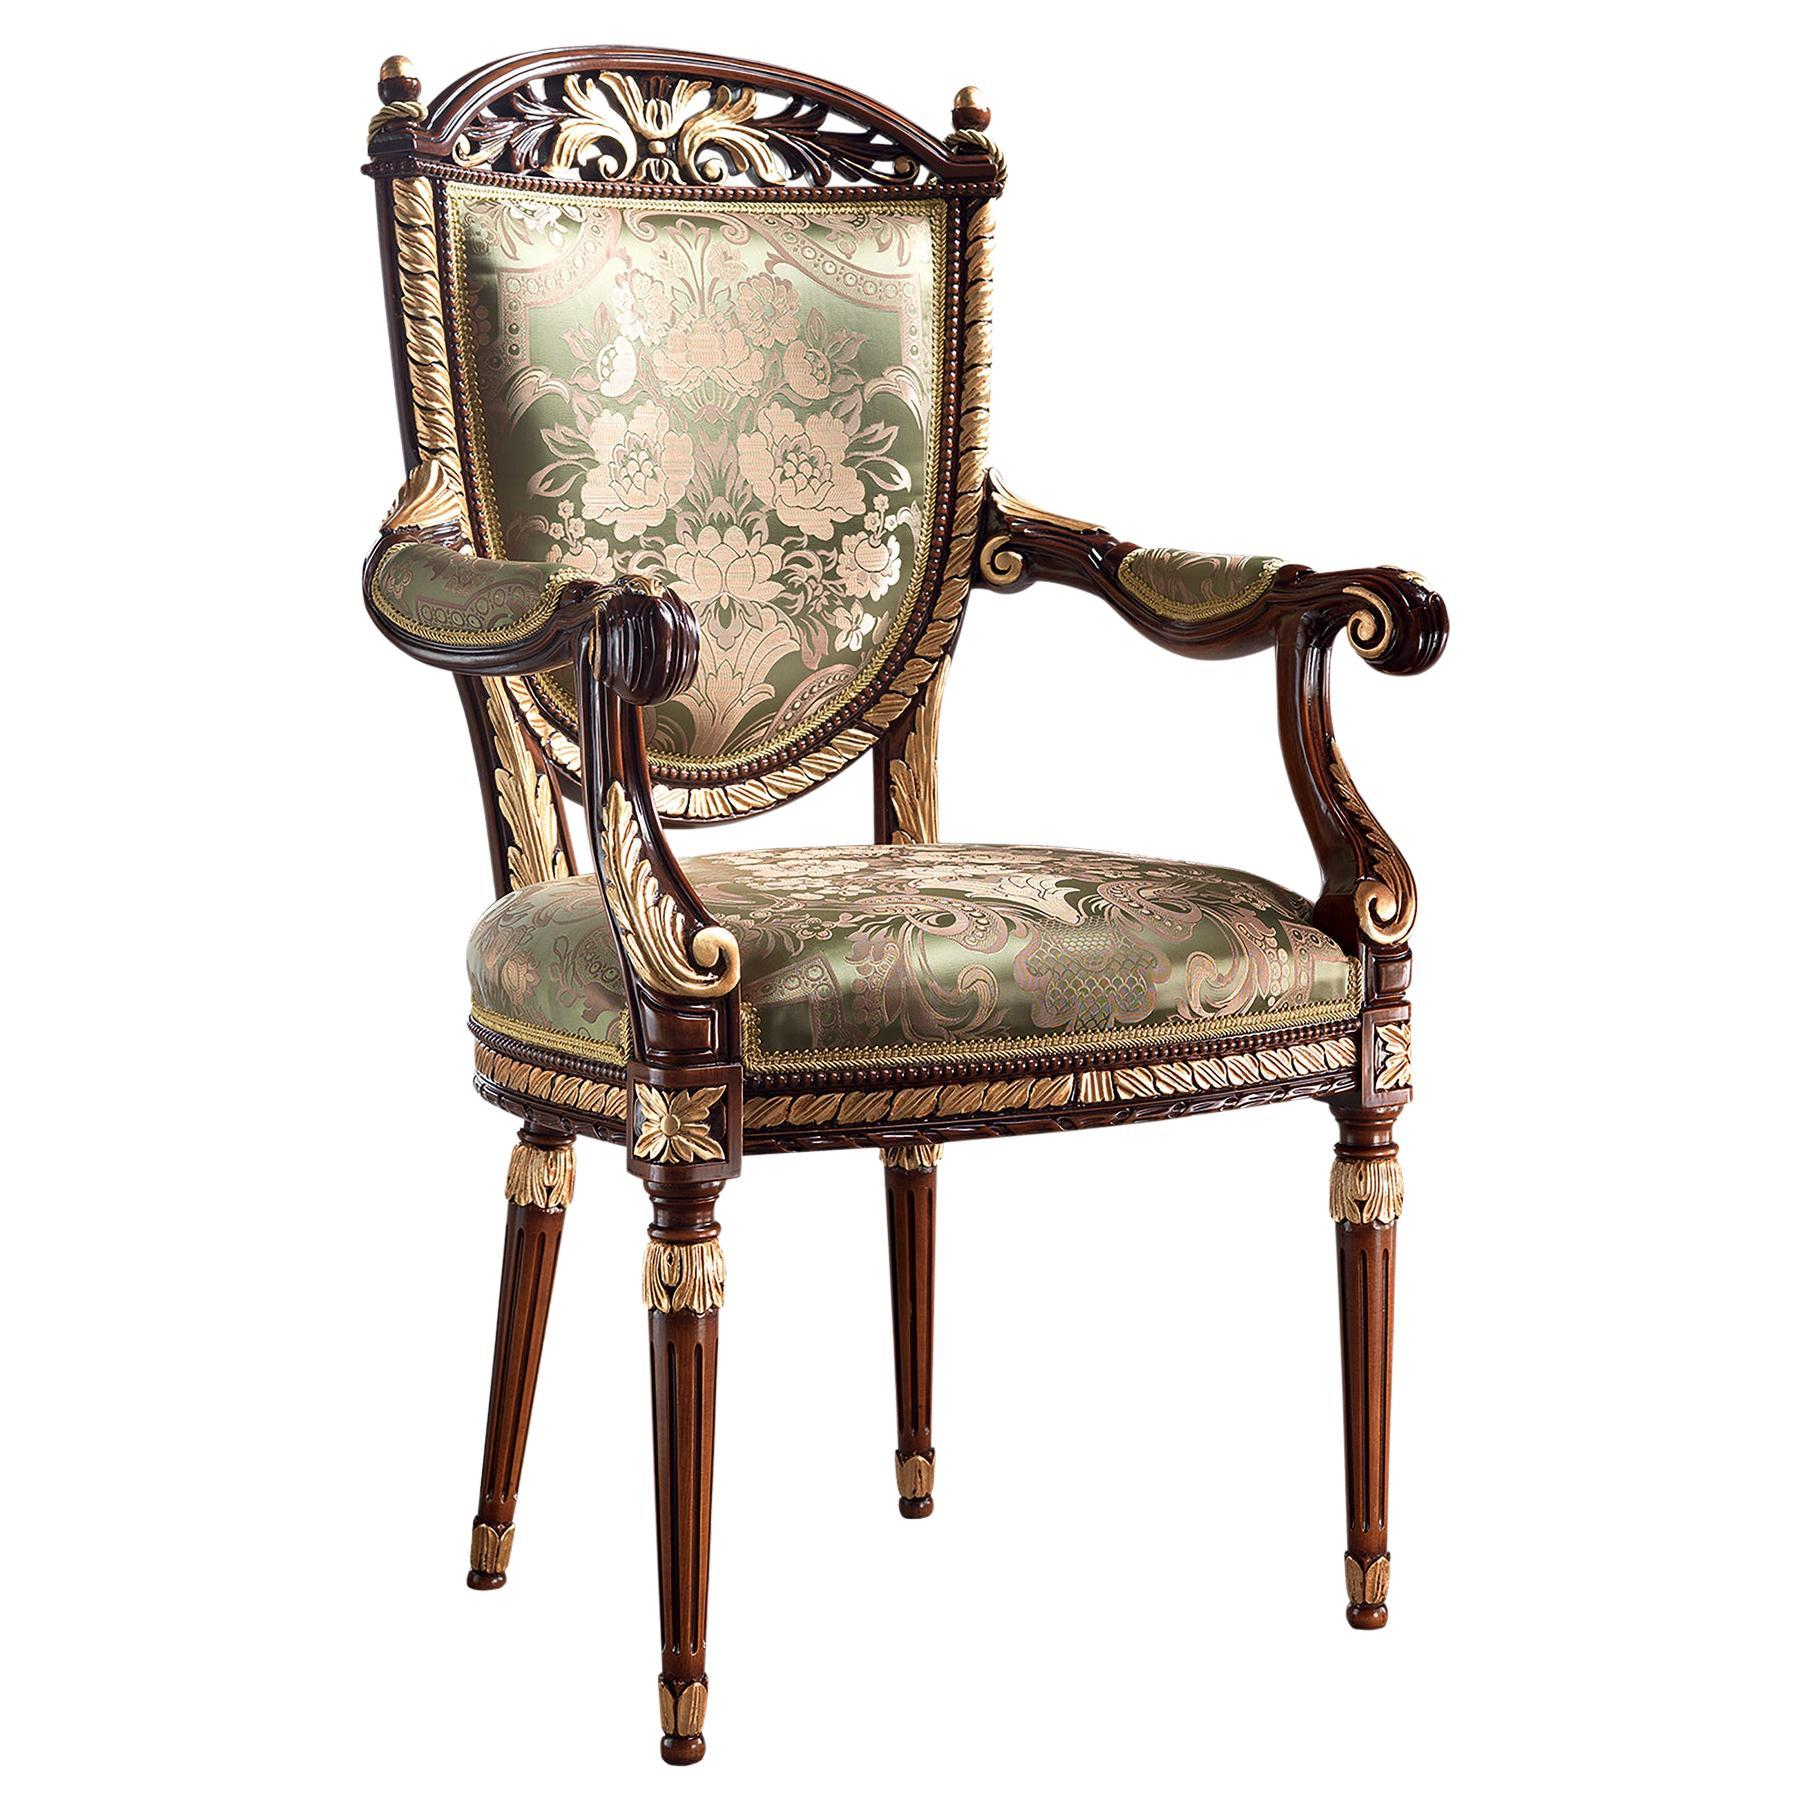 Empire Walnut and Gold Leaf Hand-Made Sitting Armchair by Modenese